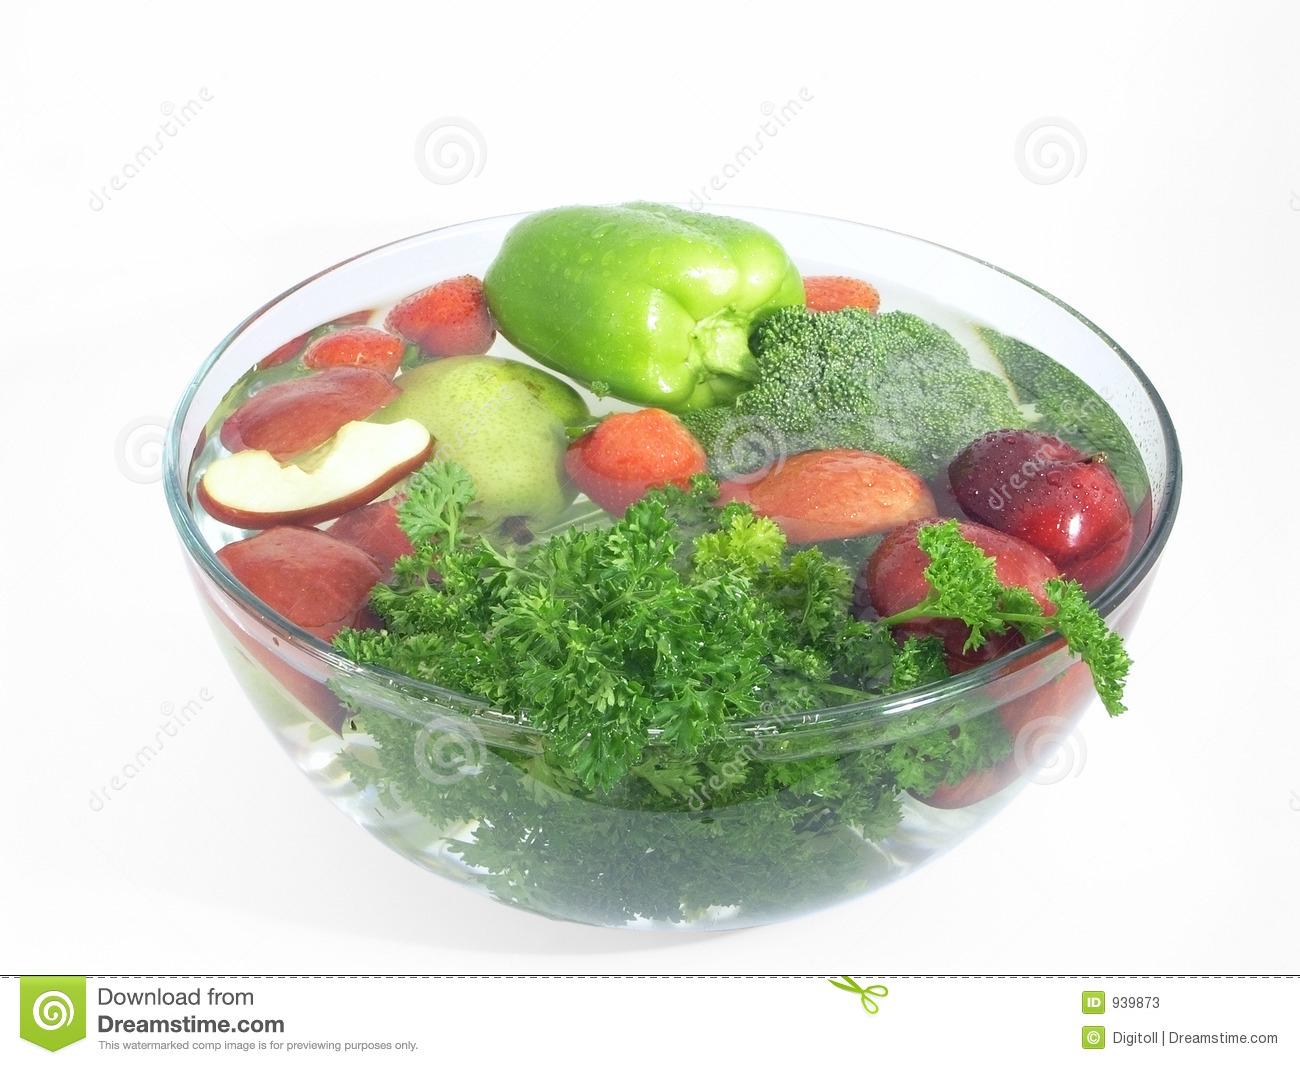 Vegetables And Fruits In A Clear Bowl 2 Of 5 Stock Image